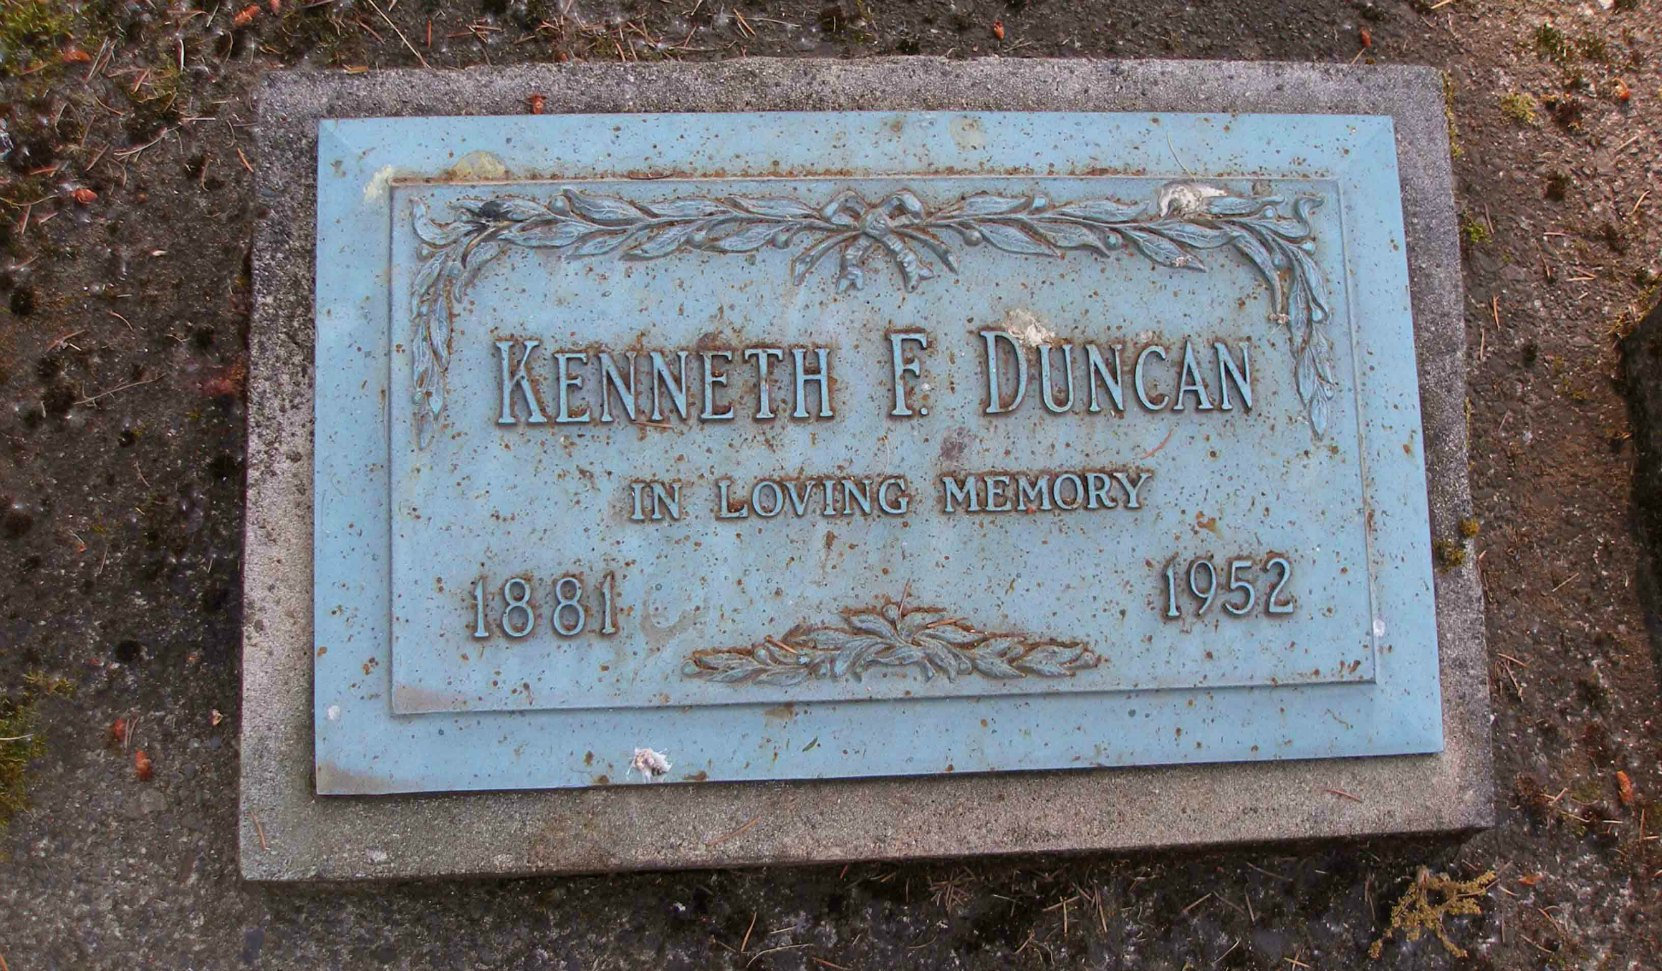 Kenneth F. Duncan grave marker, St. Peter's Quamichan Anglican cemetery.